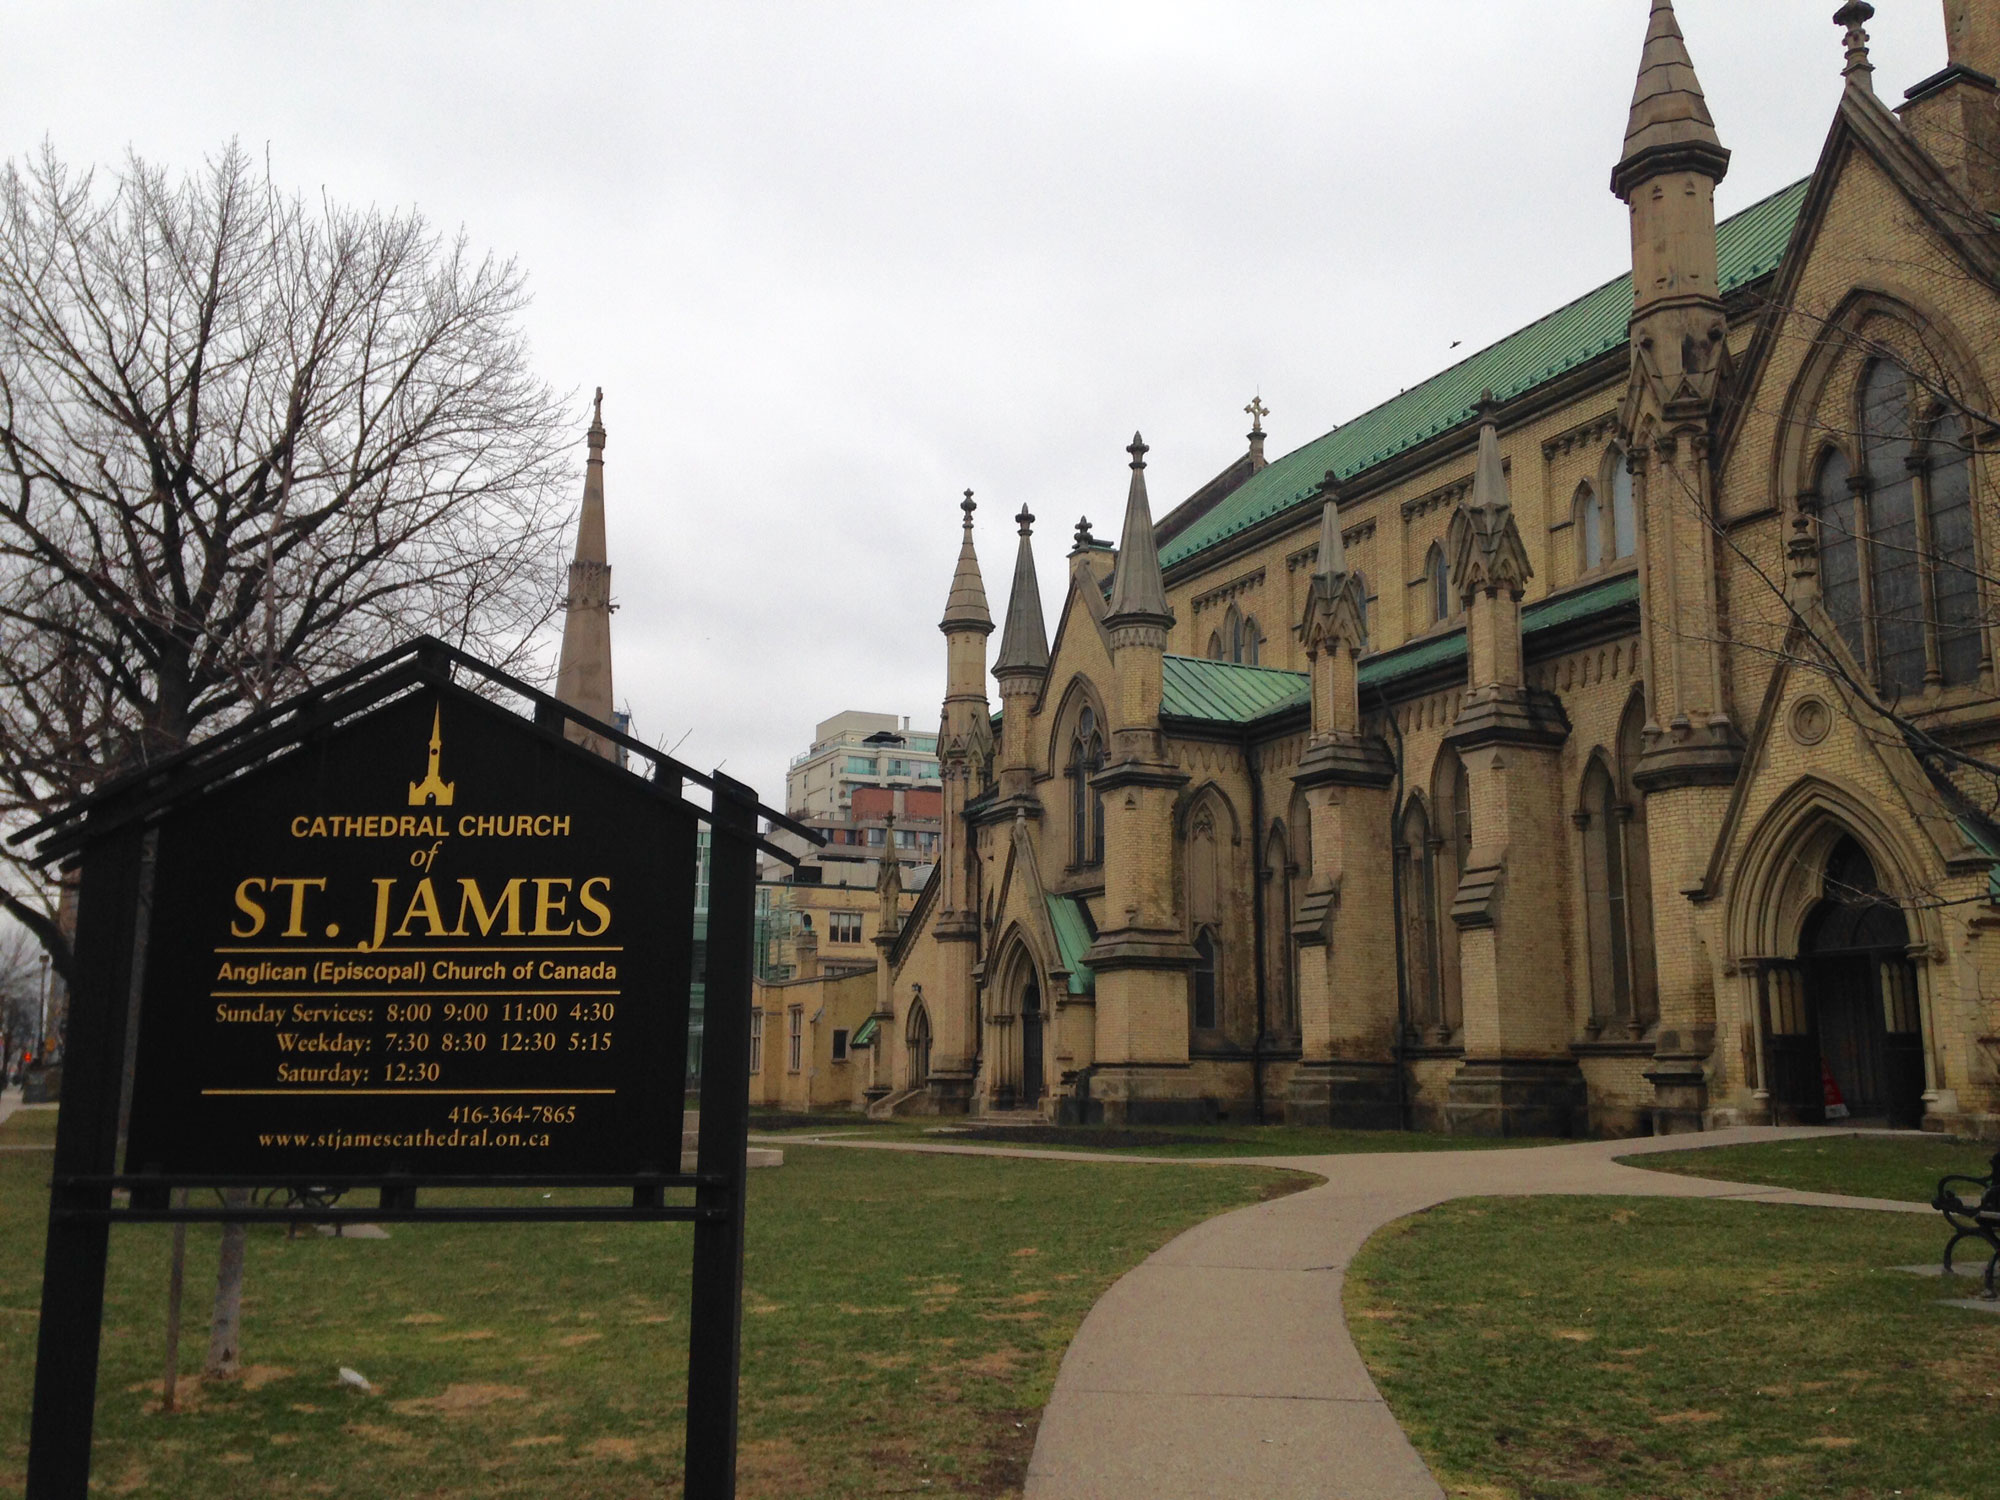 Side view of the Cathedral Church of St. James on Church Street, at King Street East, in Toronto. 680 NEWS/Patricia D'Cunha.